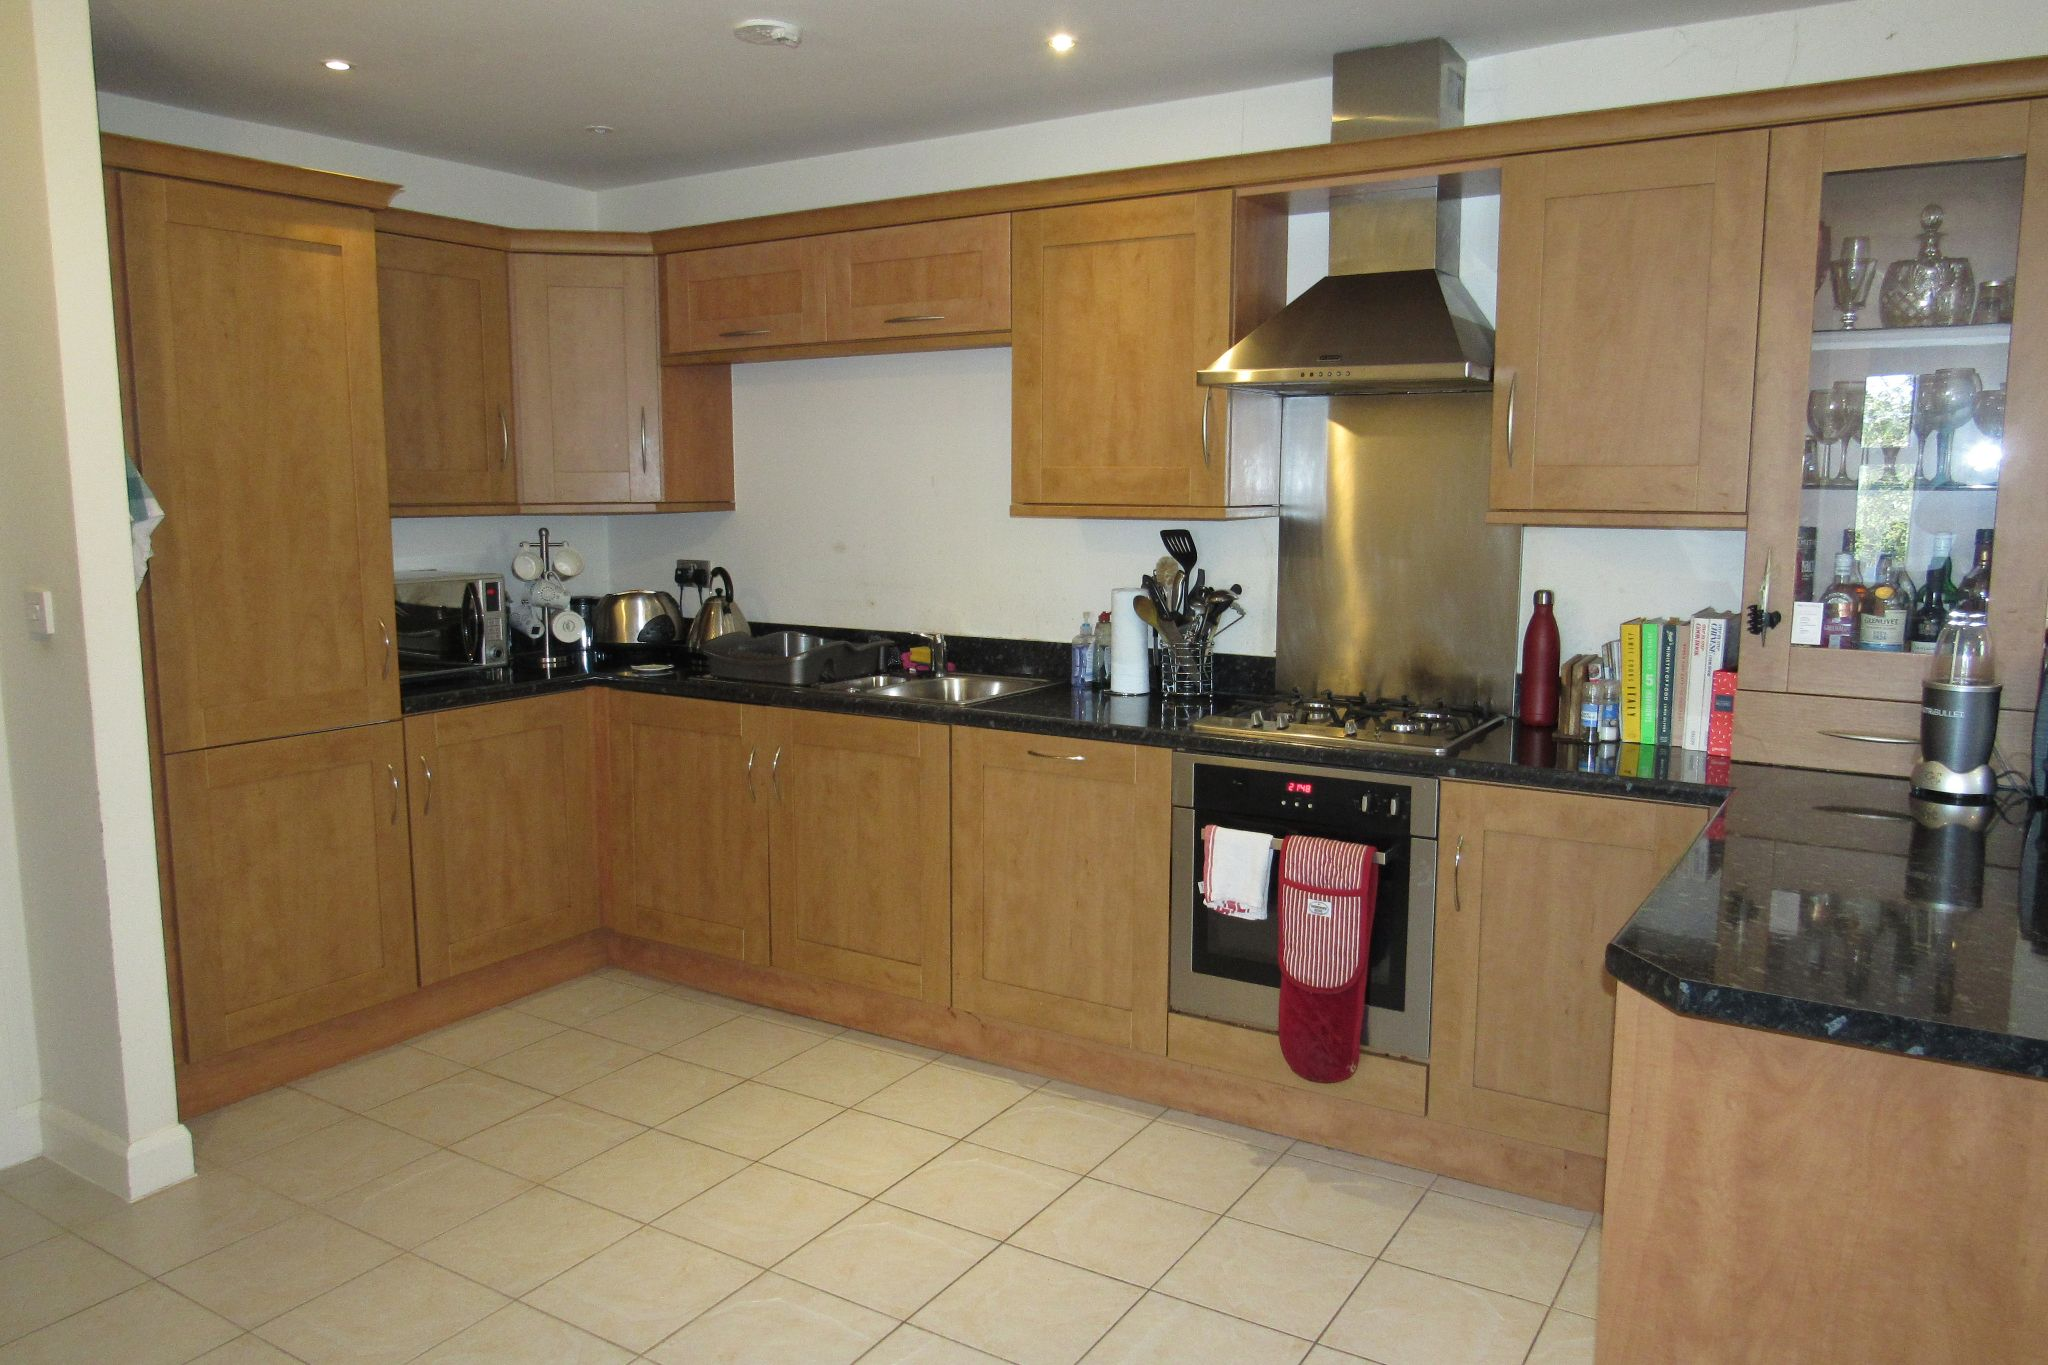 3 bedroom apartment flat/apartment SSTC in Sale - Photograph 17.